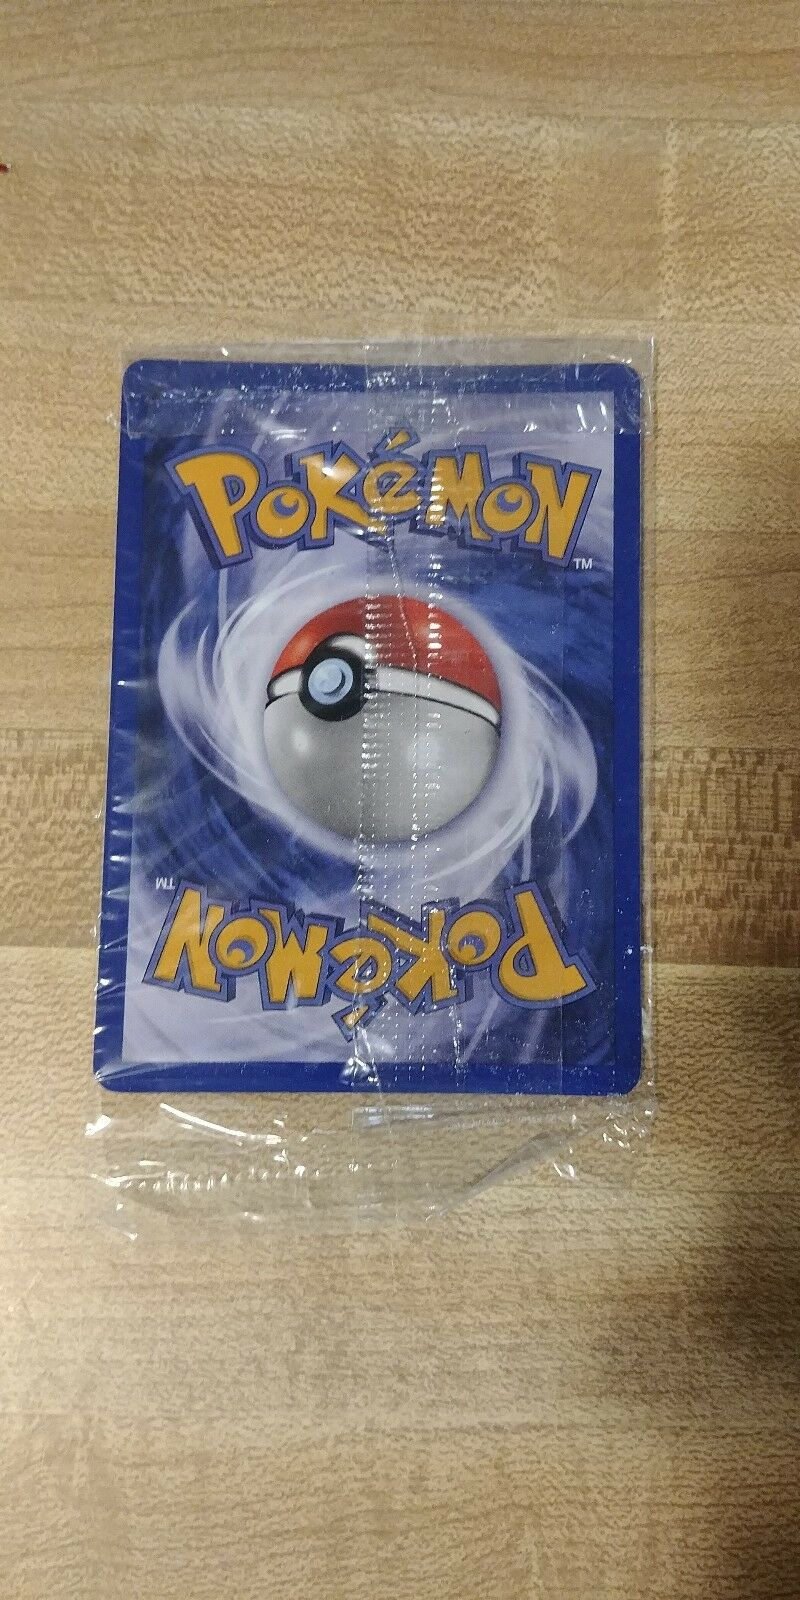 Pokemon Pokemon Pokemon machamp first edition sealed card 8 102 holographic mint condition f74cf2